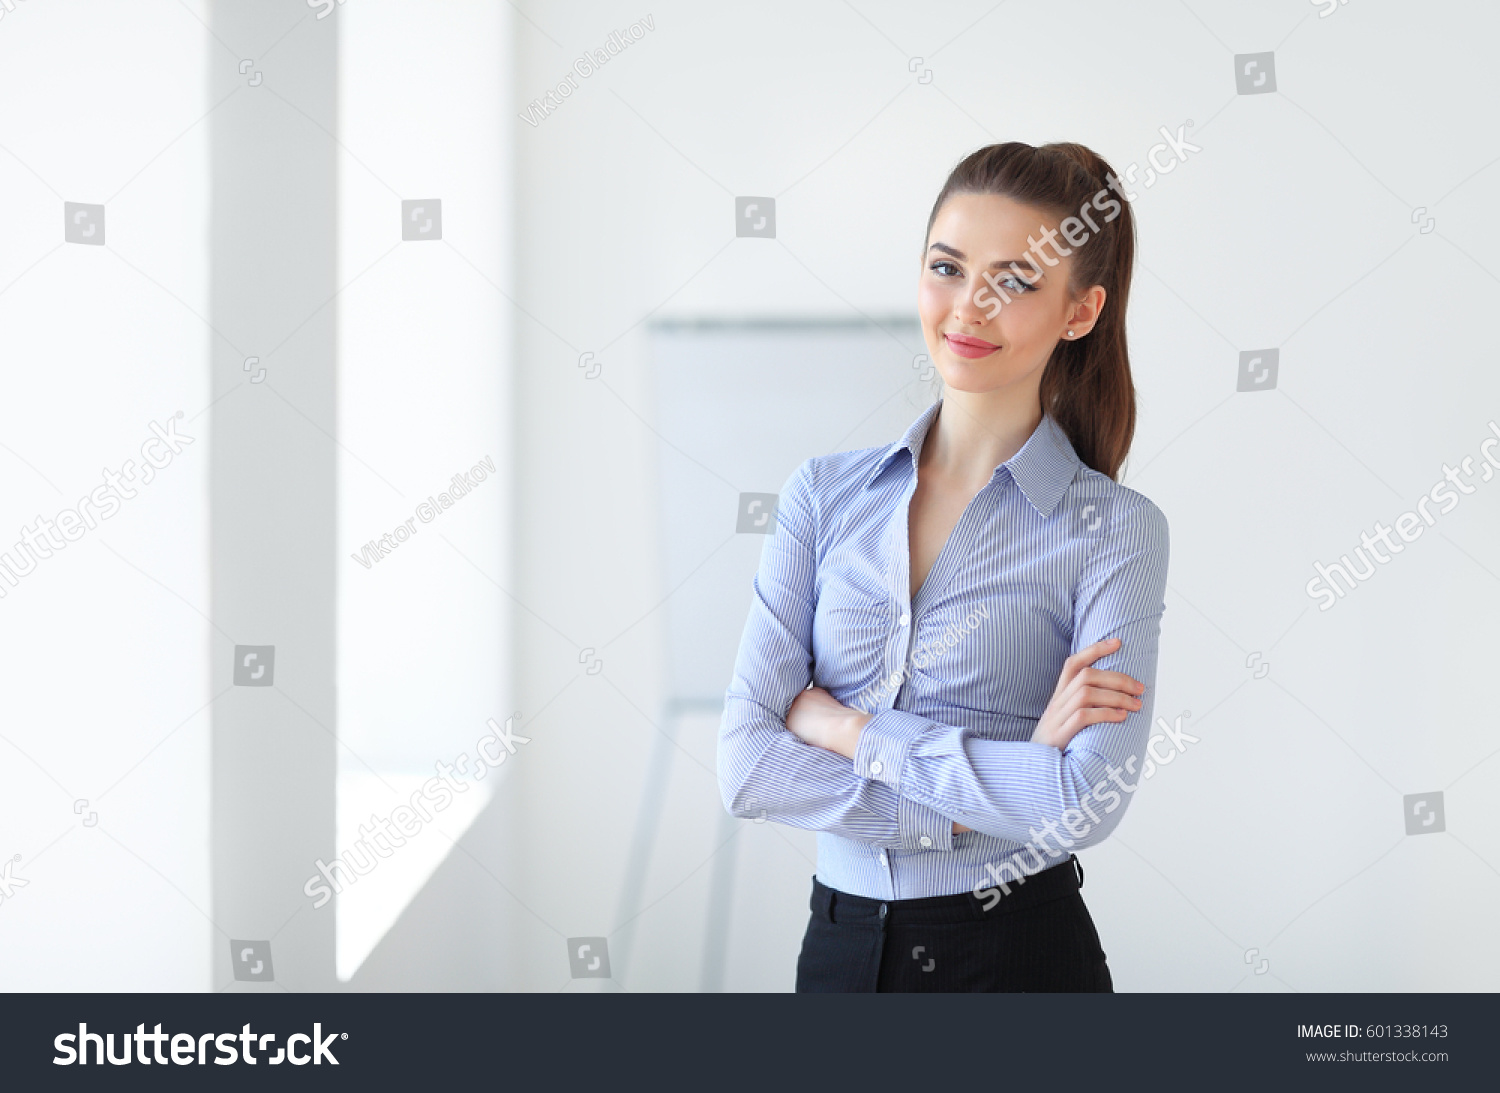 Portrait young beautiful business woman office stock photo 601338143 shutterstock - Office portrait photography ...